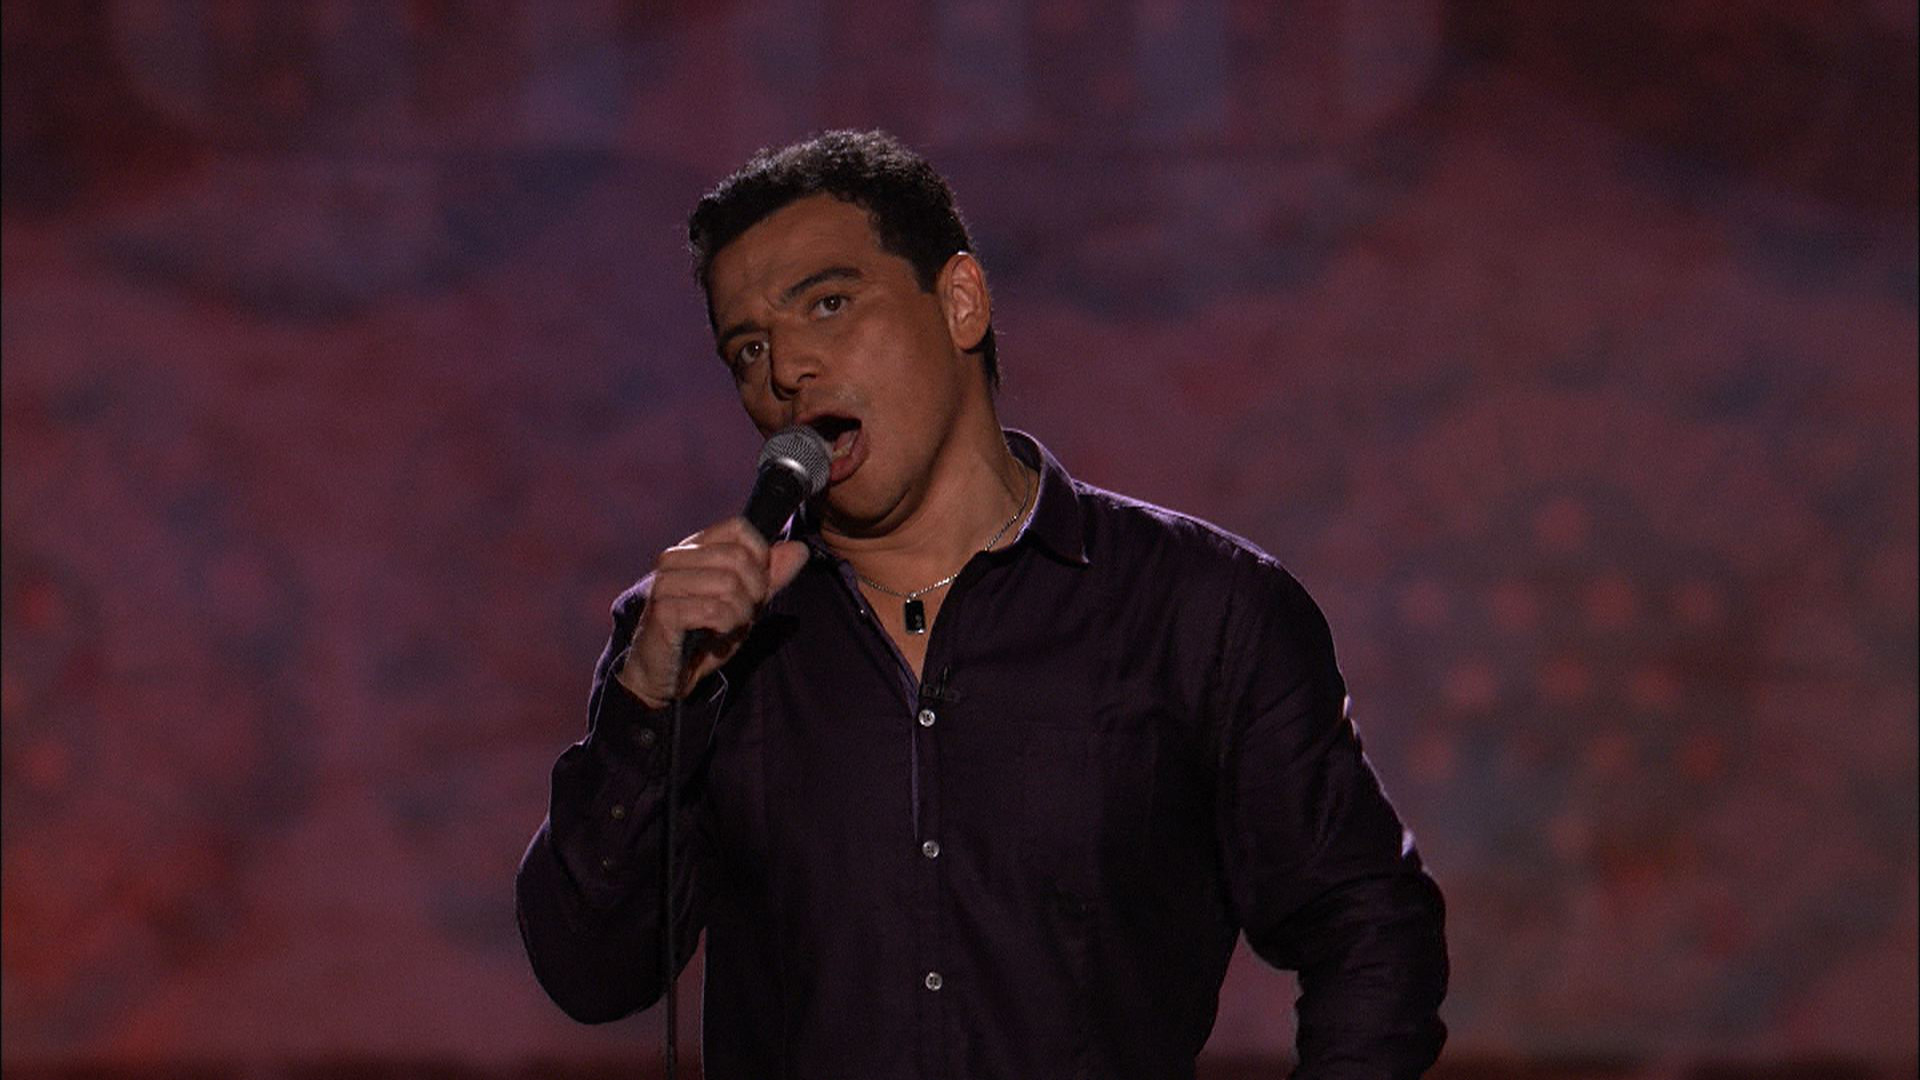 Uncensored - Carlos Mencia - Without an Accent